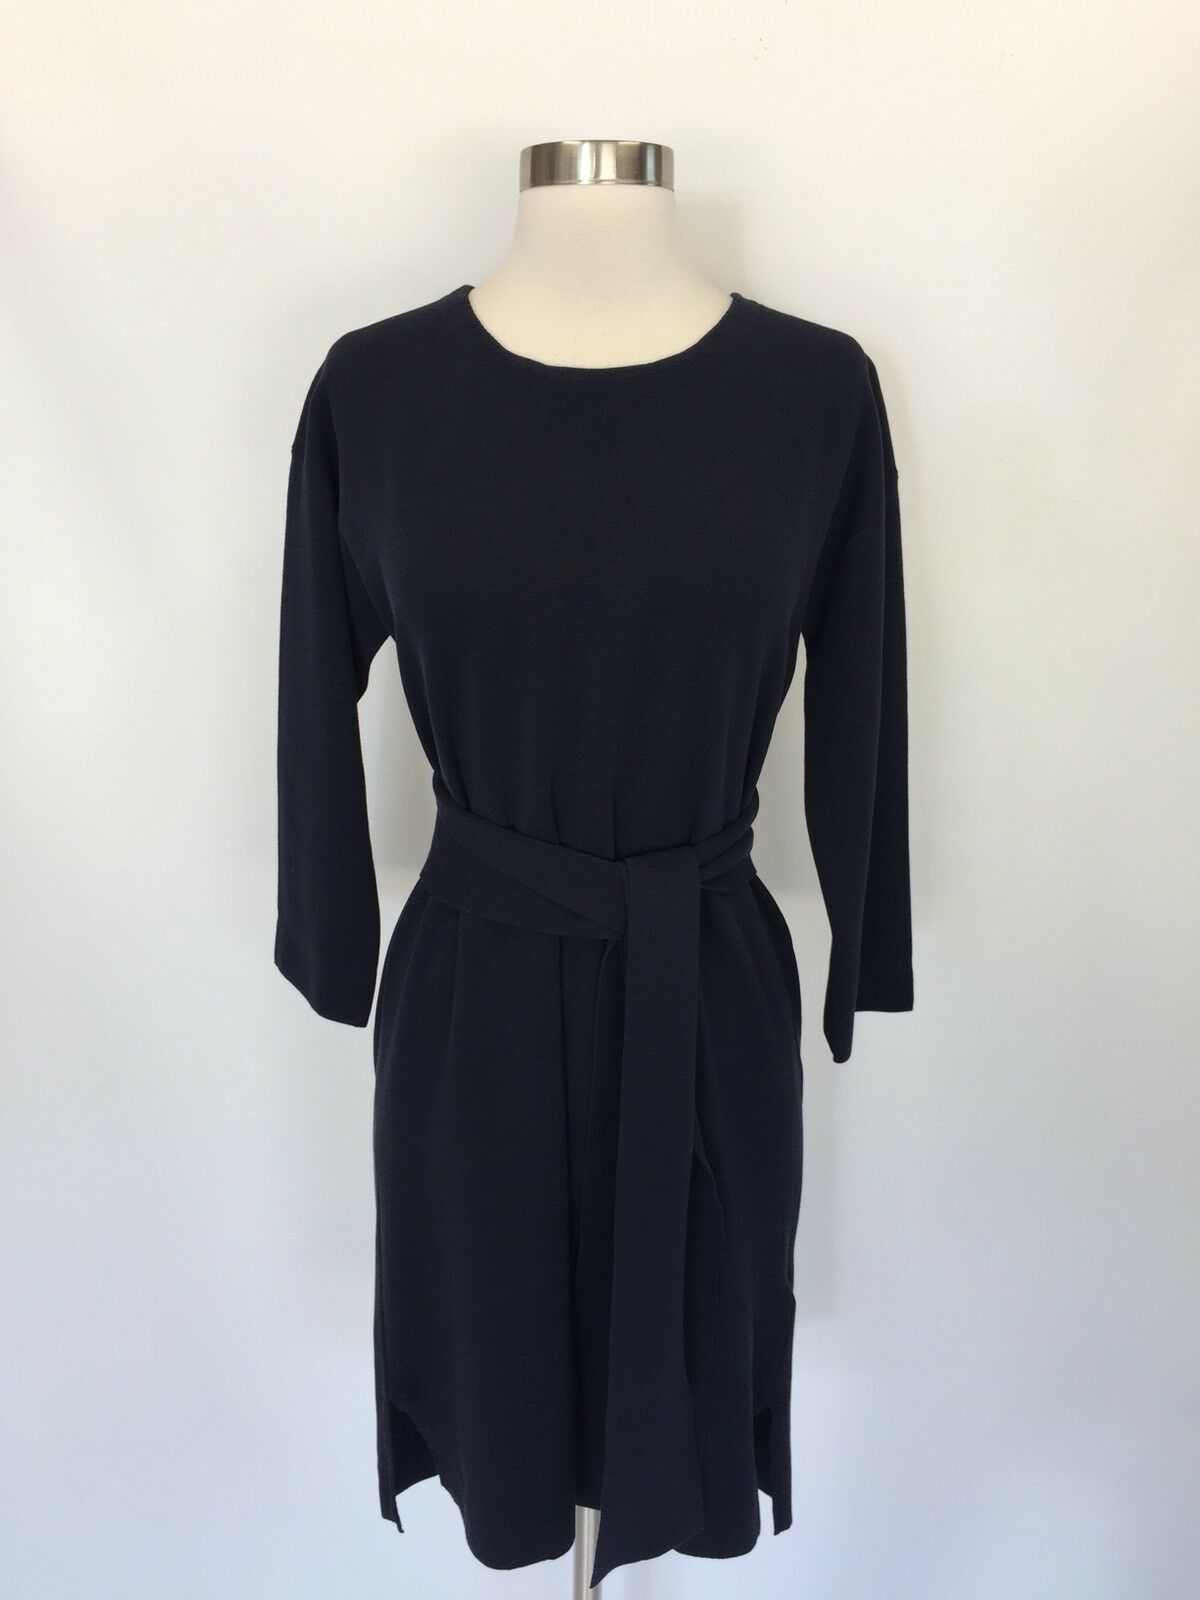 New J.CREW Tie-Waist Cotton Dress Indigo Sea Navy Sz S Small H6940